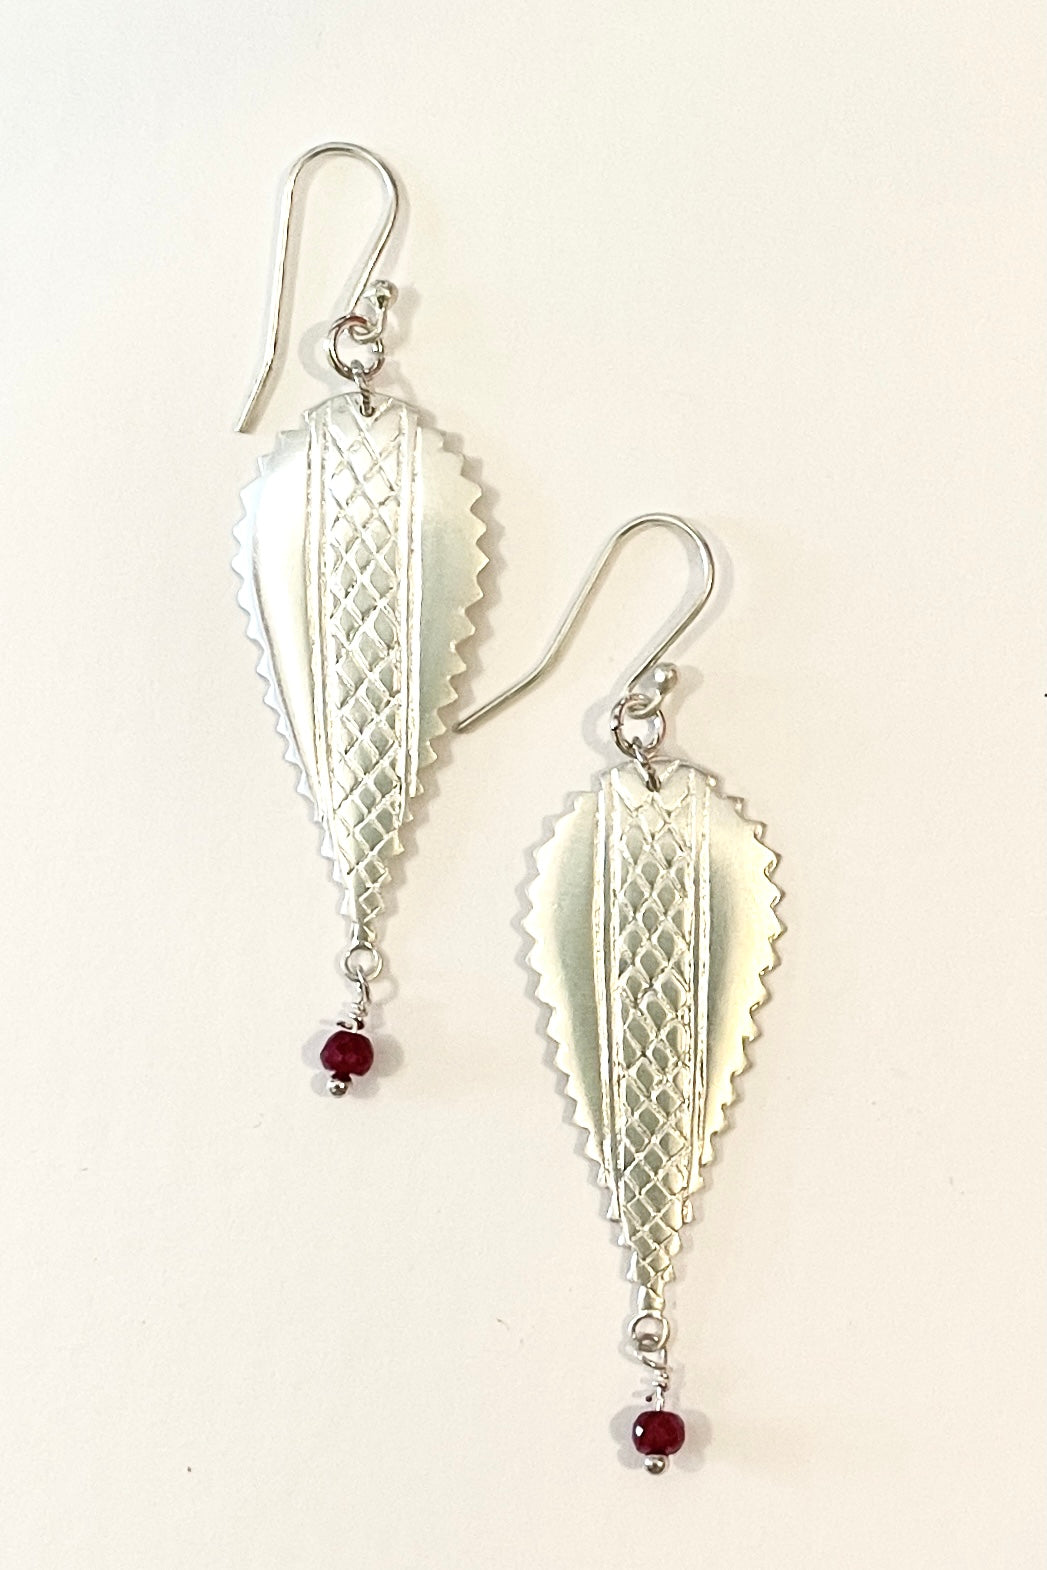 earrings In 925 silver with a small ruby bead suspended from the base.